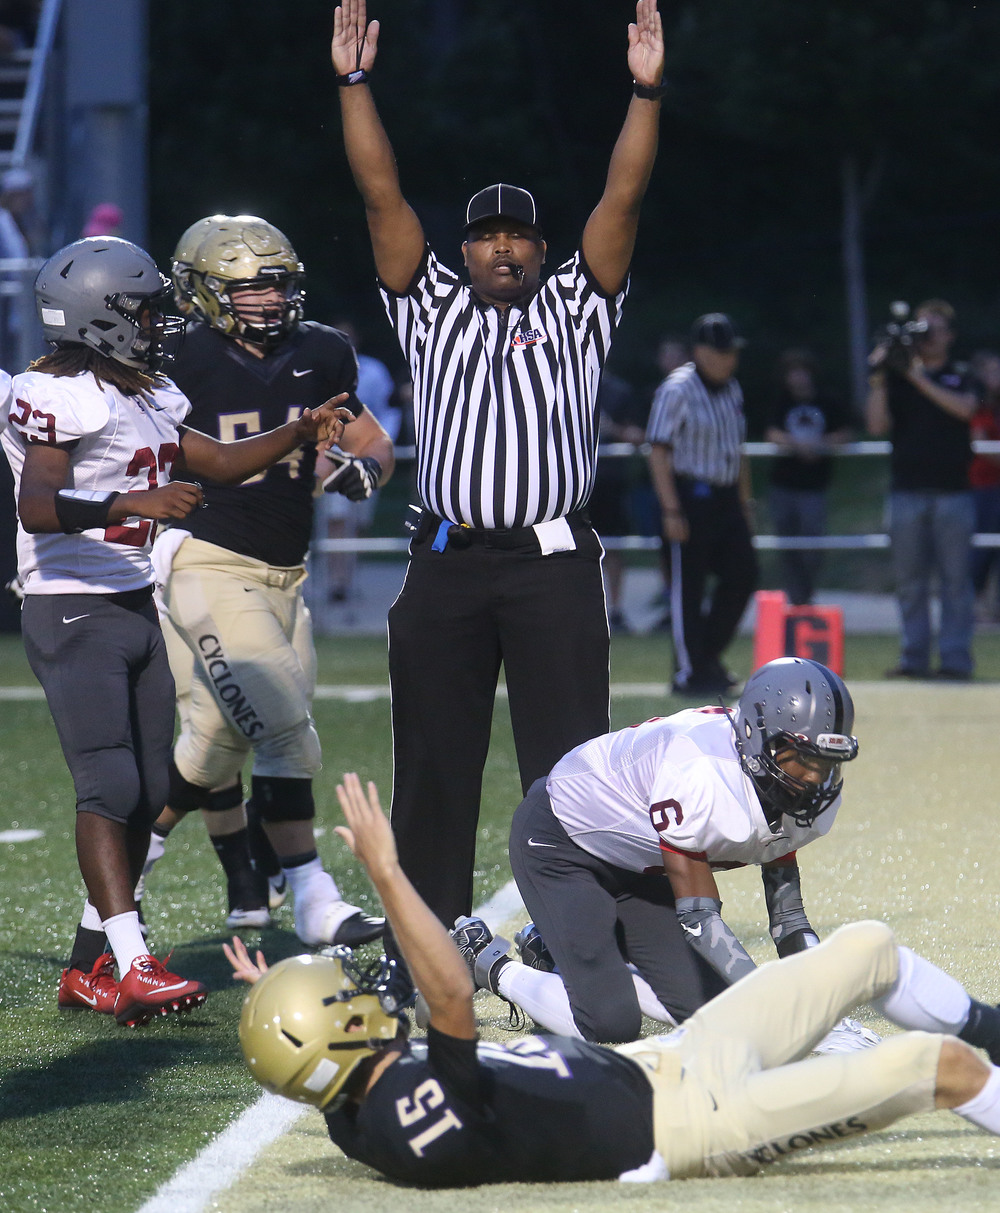 A referee calls a touchdown made by Cyclones quarterback Tim Brenneisen at bottom of frame Friday night. David Spencer/The State Journal-Register